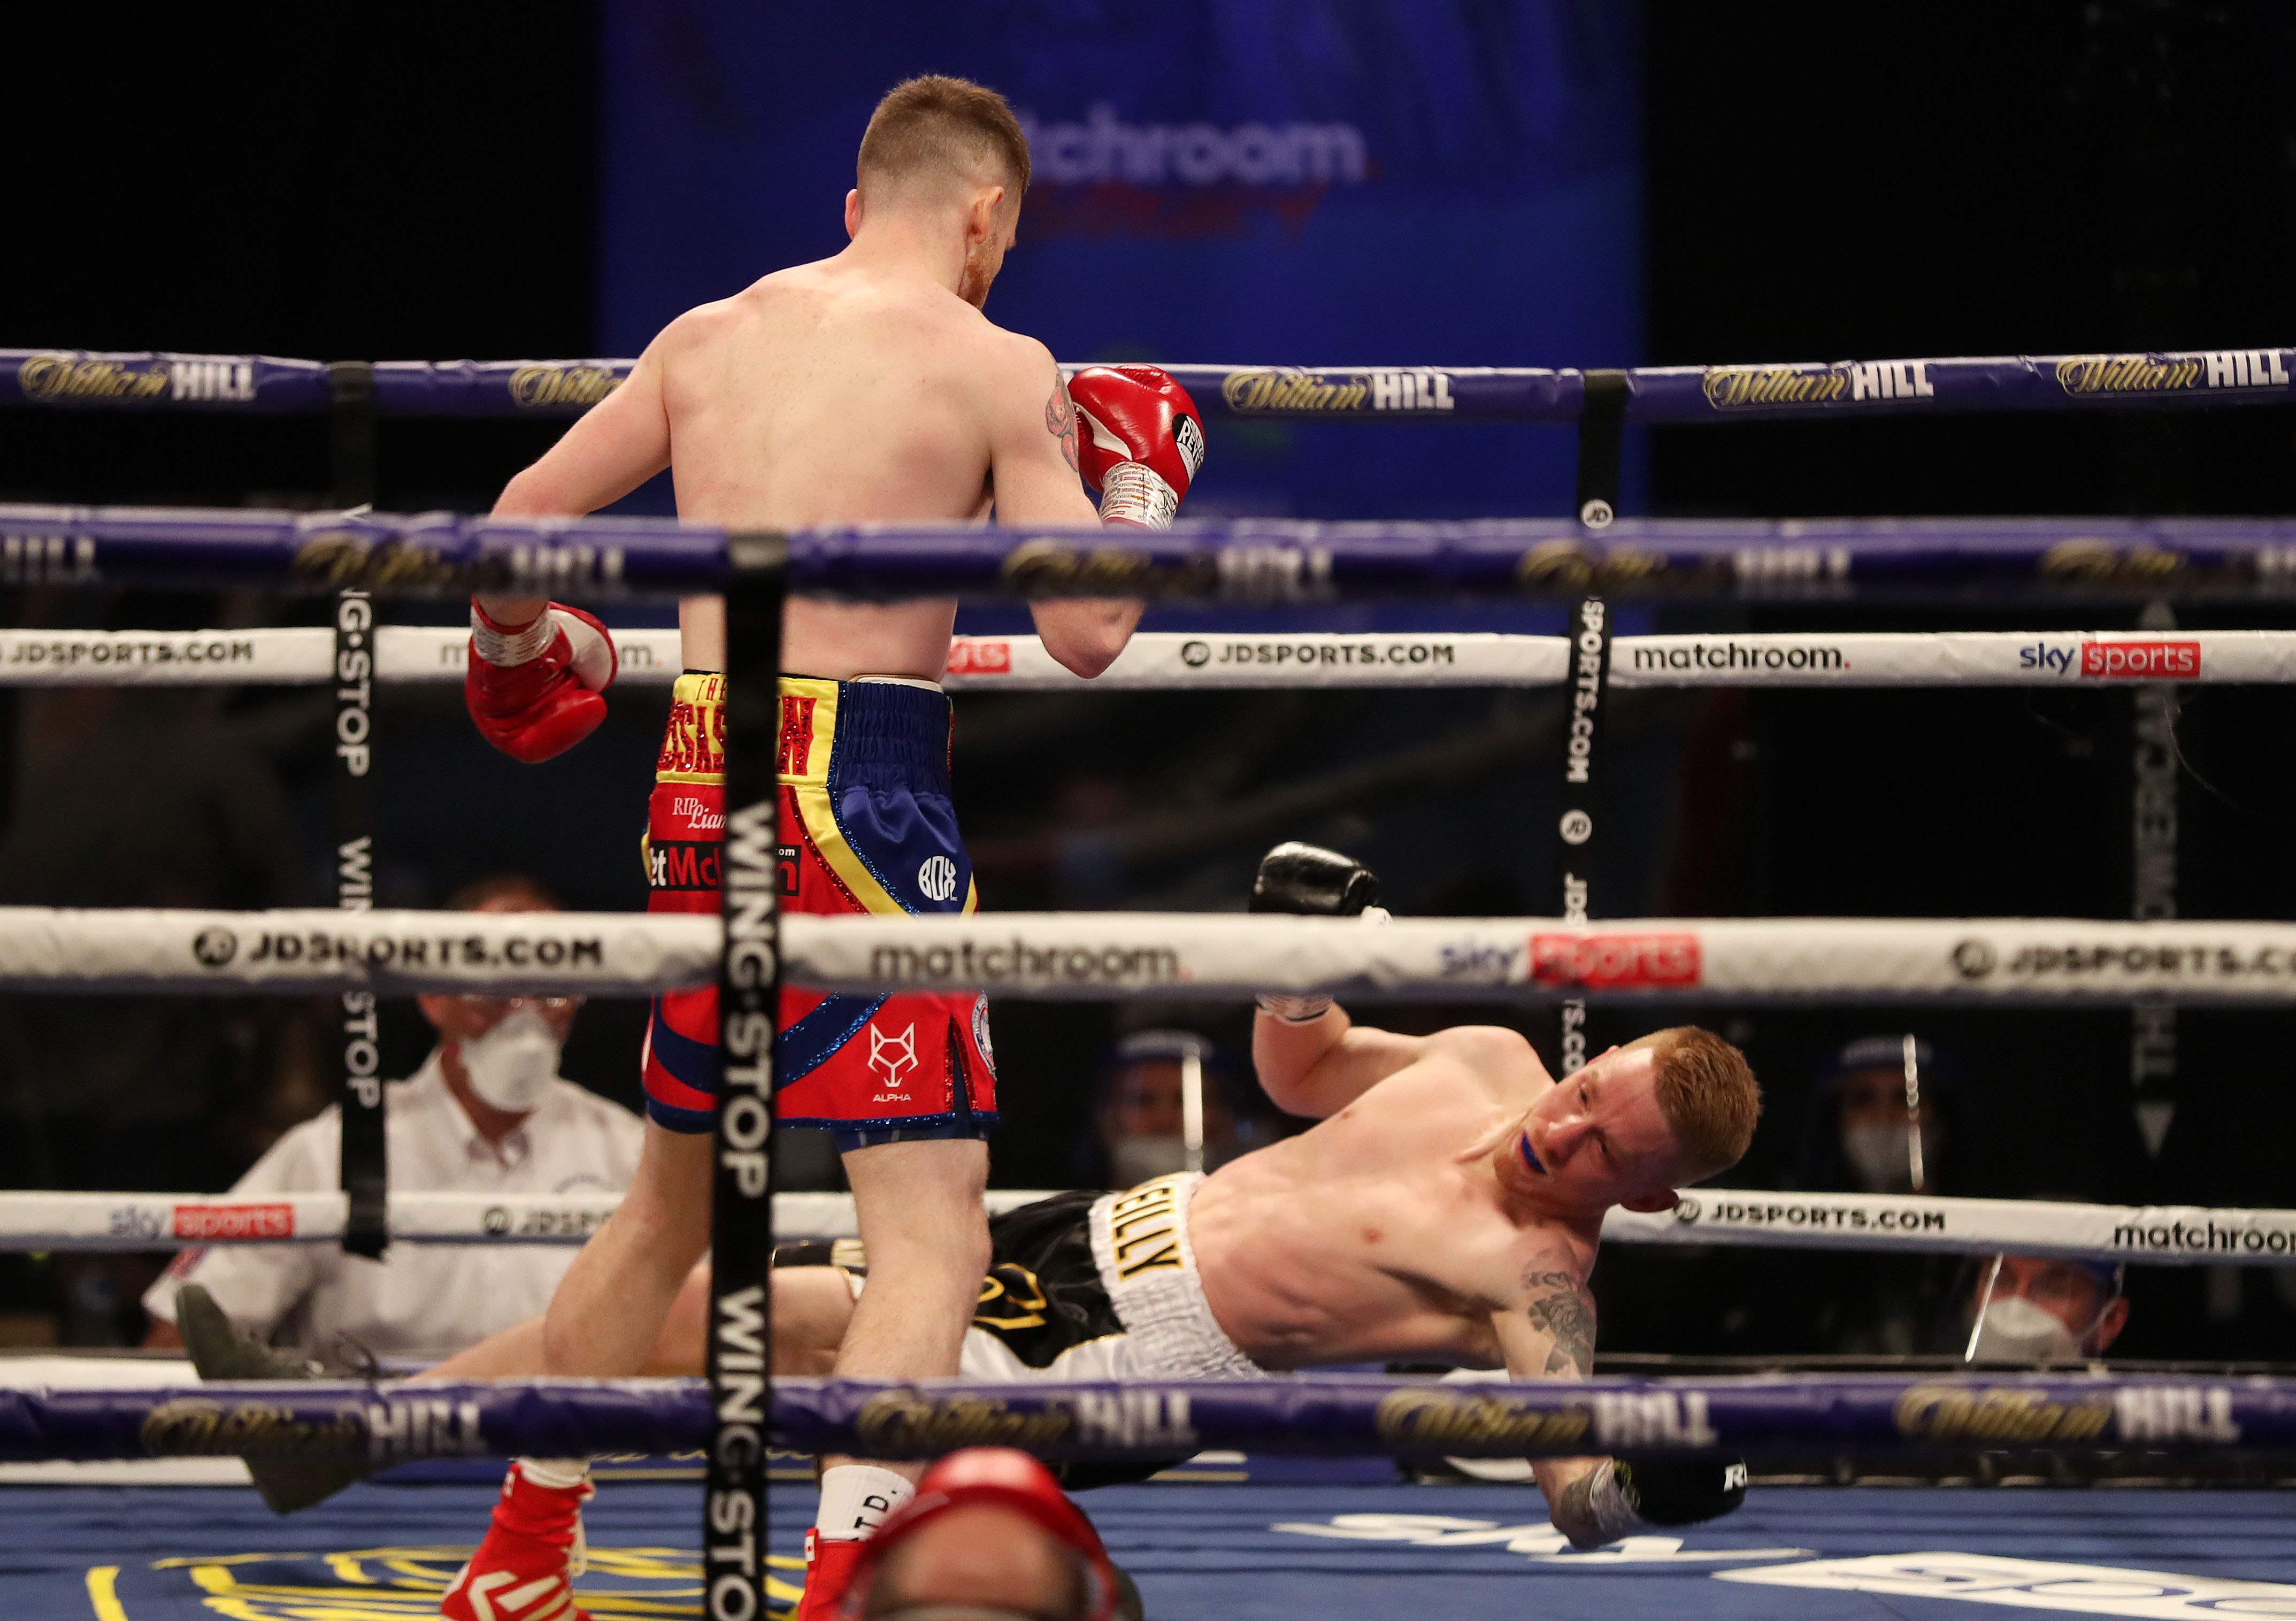 James Tennyson demolished Josh O\'Reilly in one round last time out